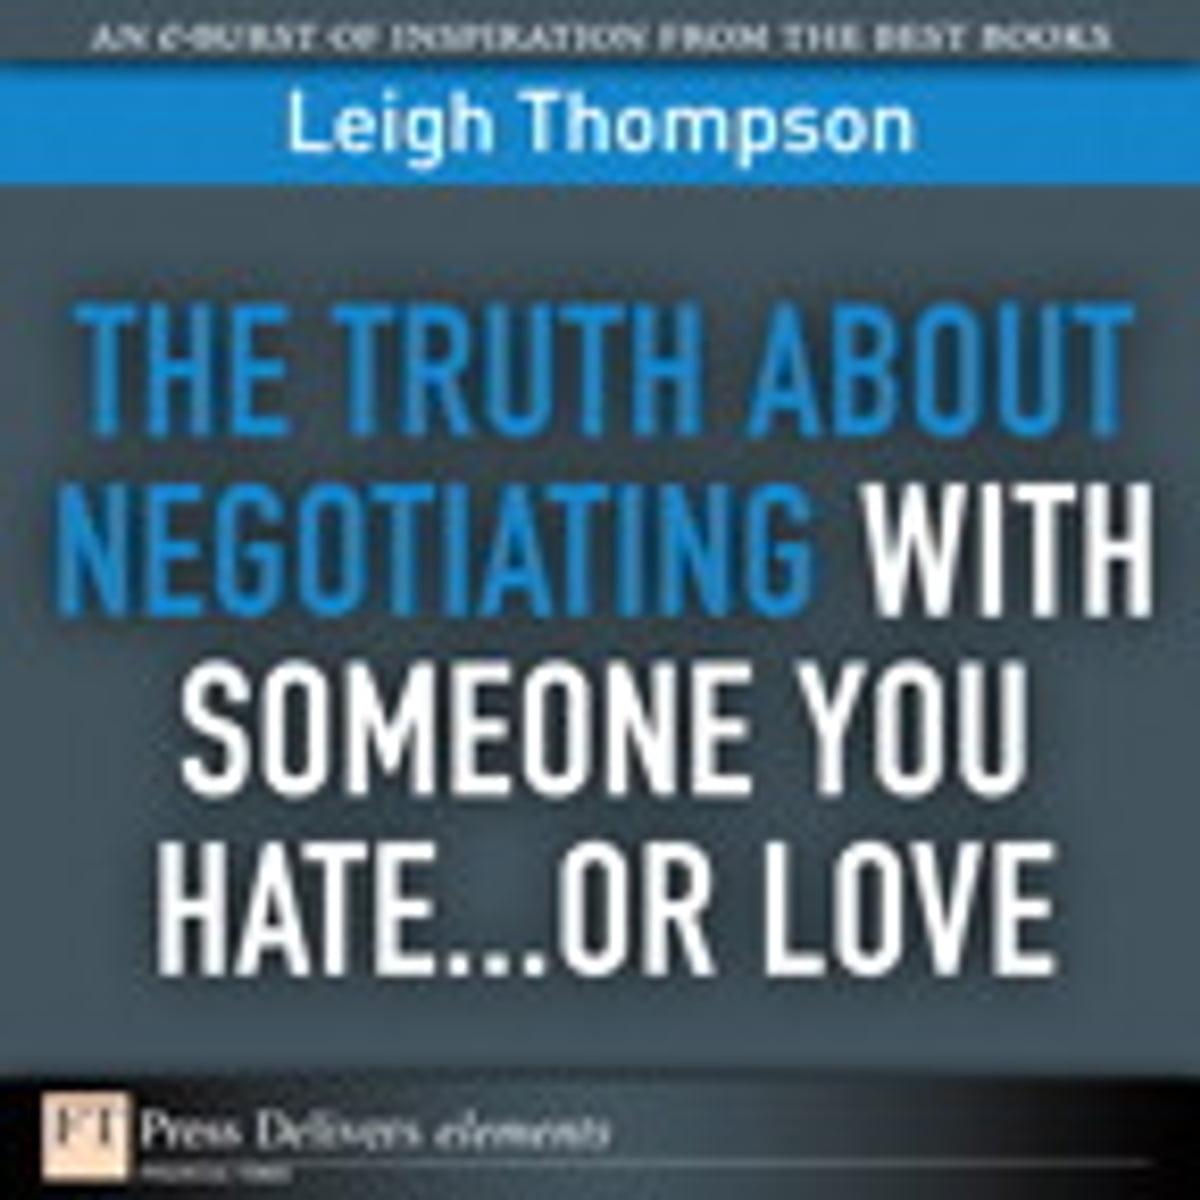 The Truth About Negotiating with Someone You Hate...or Love eBook by Leigh  L. Thompson - 9780132485159   Rakuten Kobo